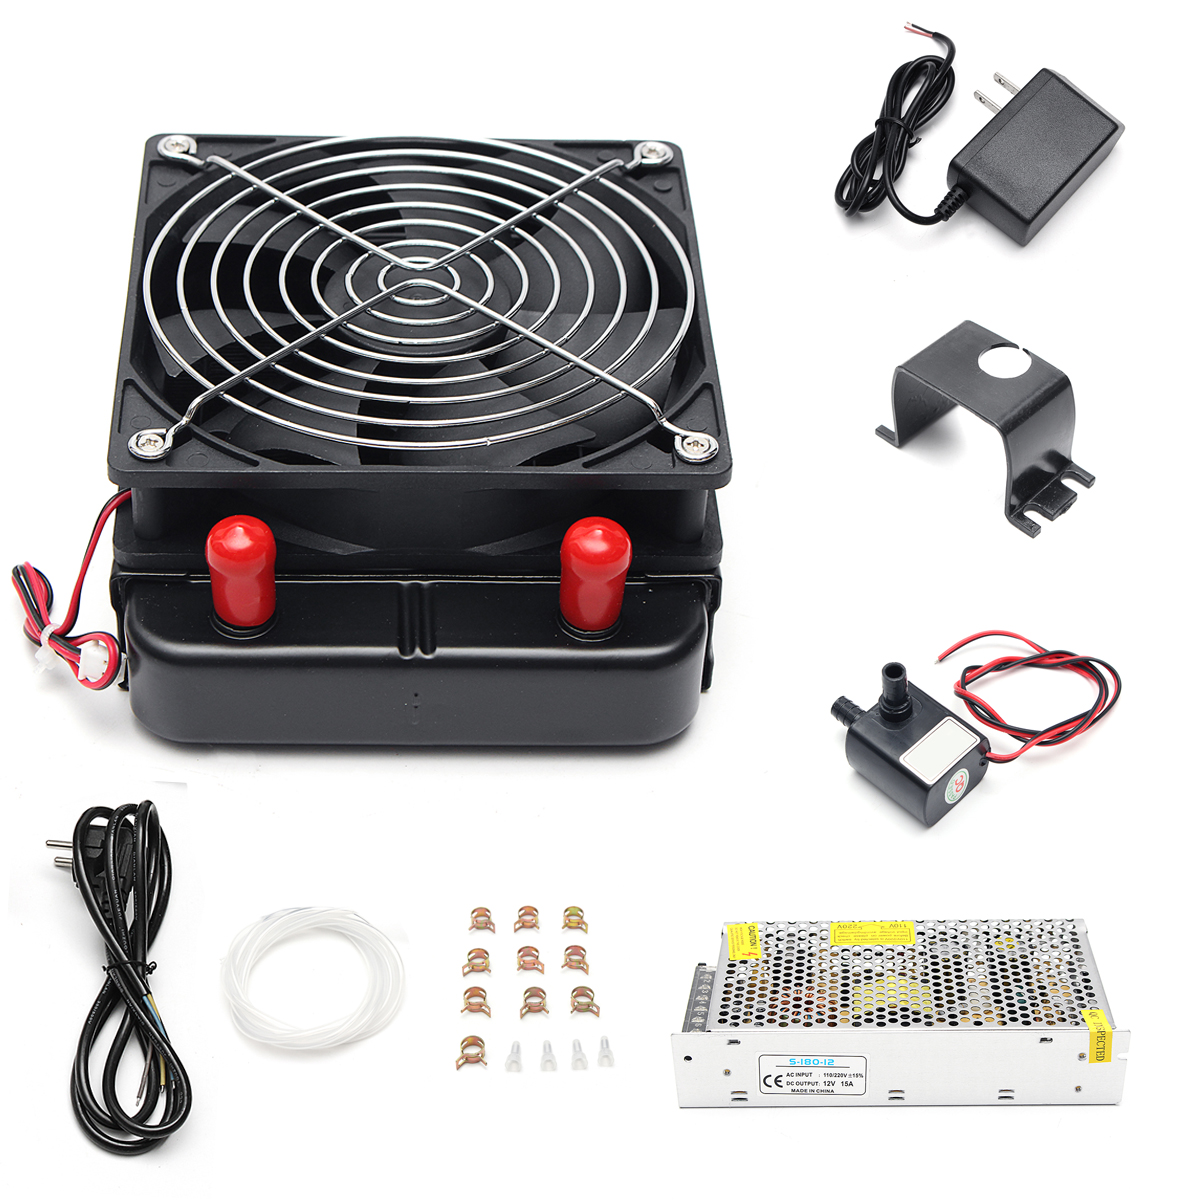 DC 12V Peltier Semiconductor Cooler DIY Kit For Refrigeration Air